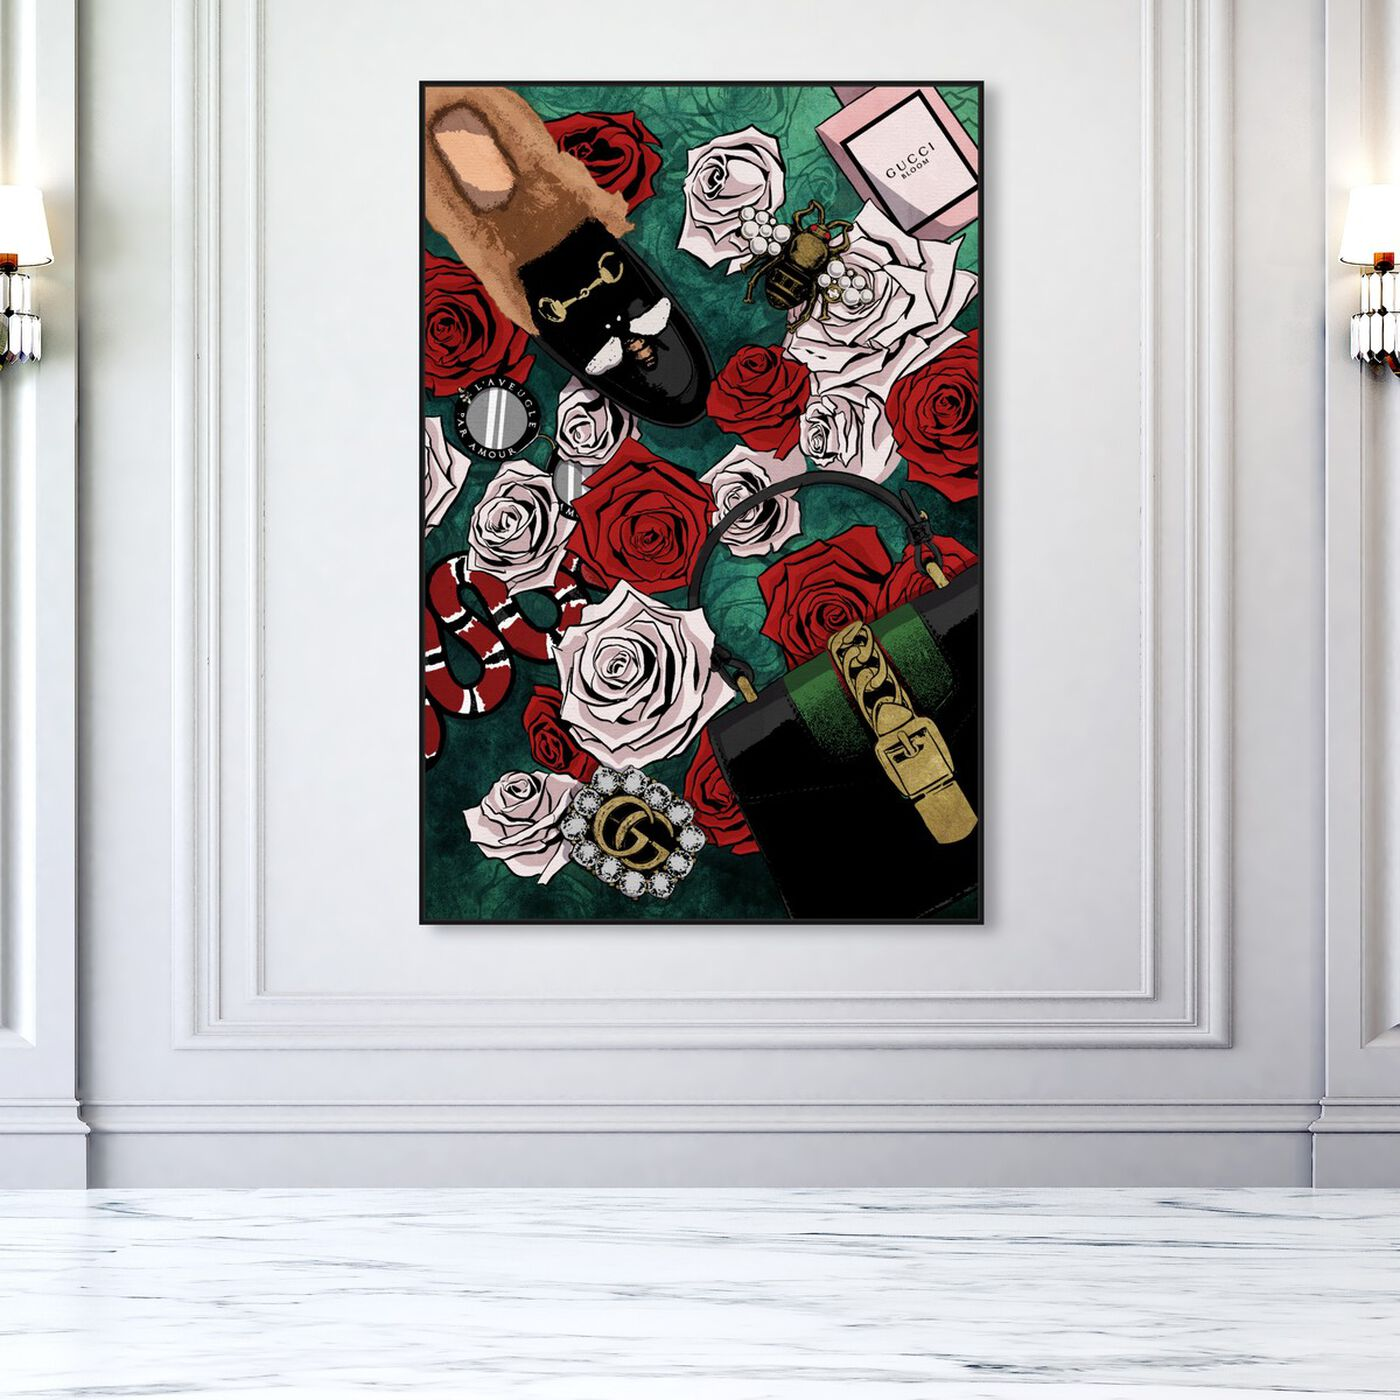 Hanging view of Garden of Glam featuring fashion and glam and lifestyle art.